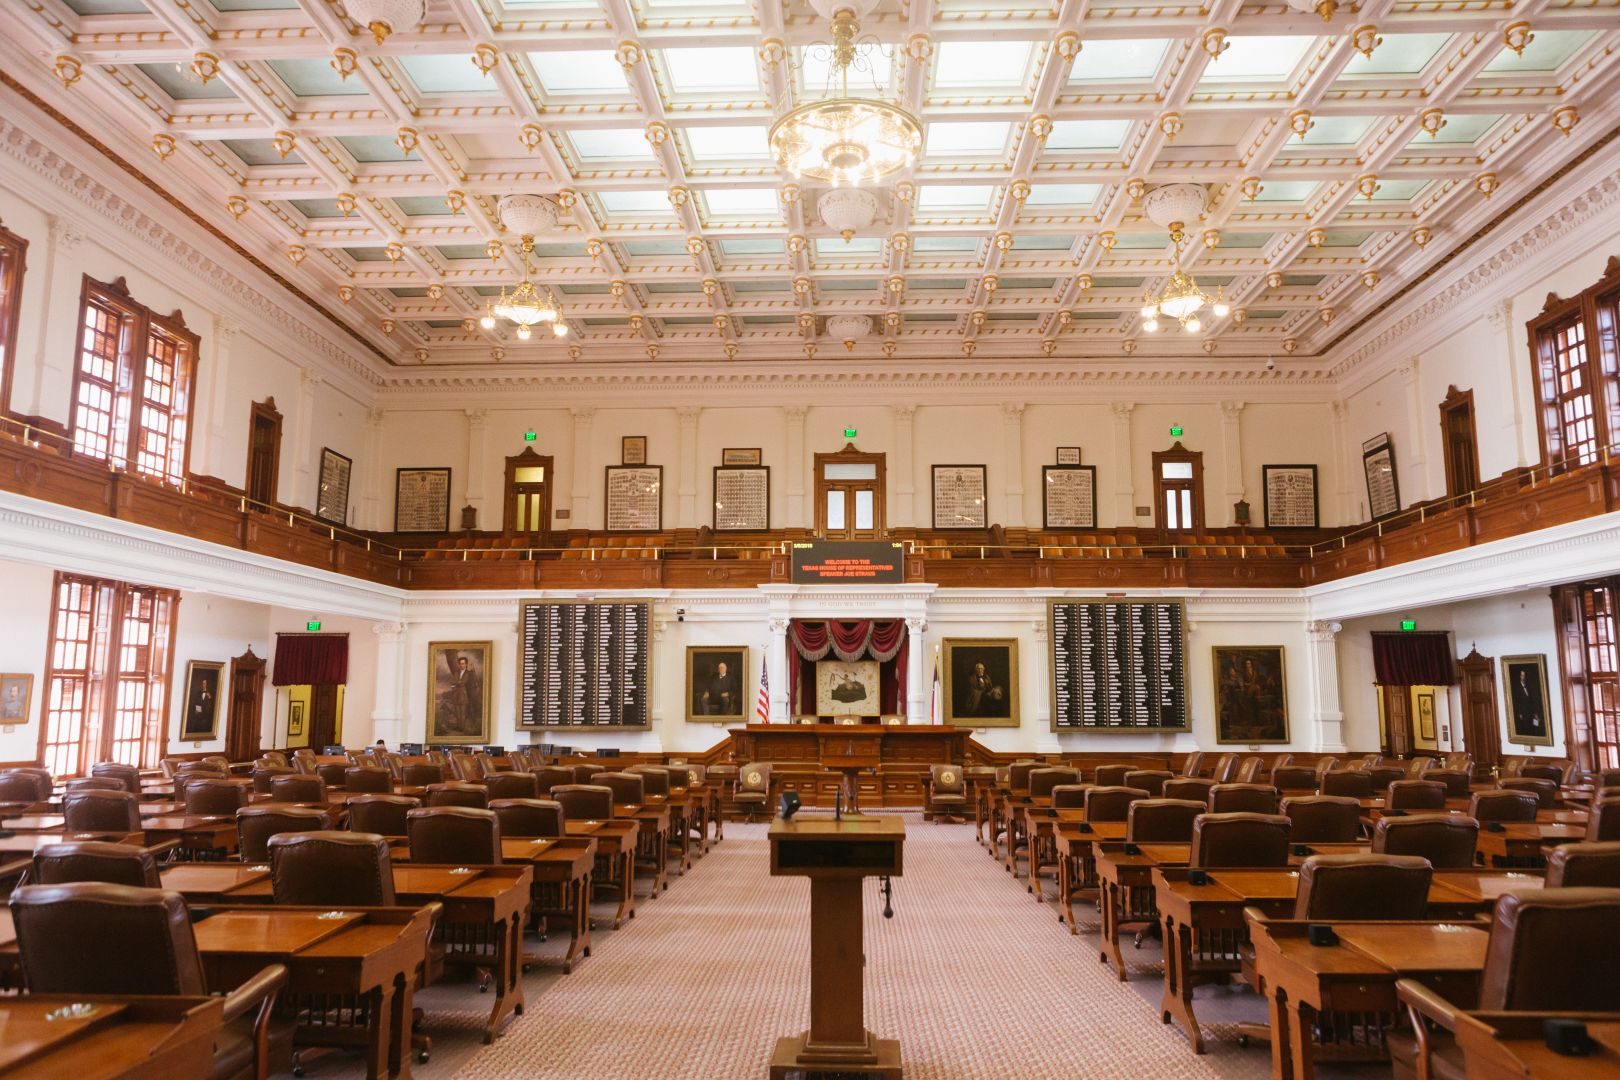 A photo depicting Austin Texas State Capital Floor